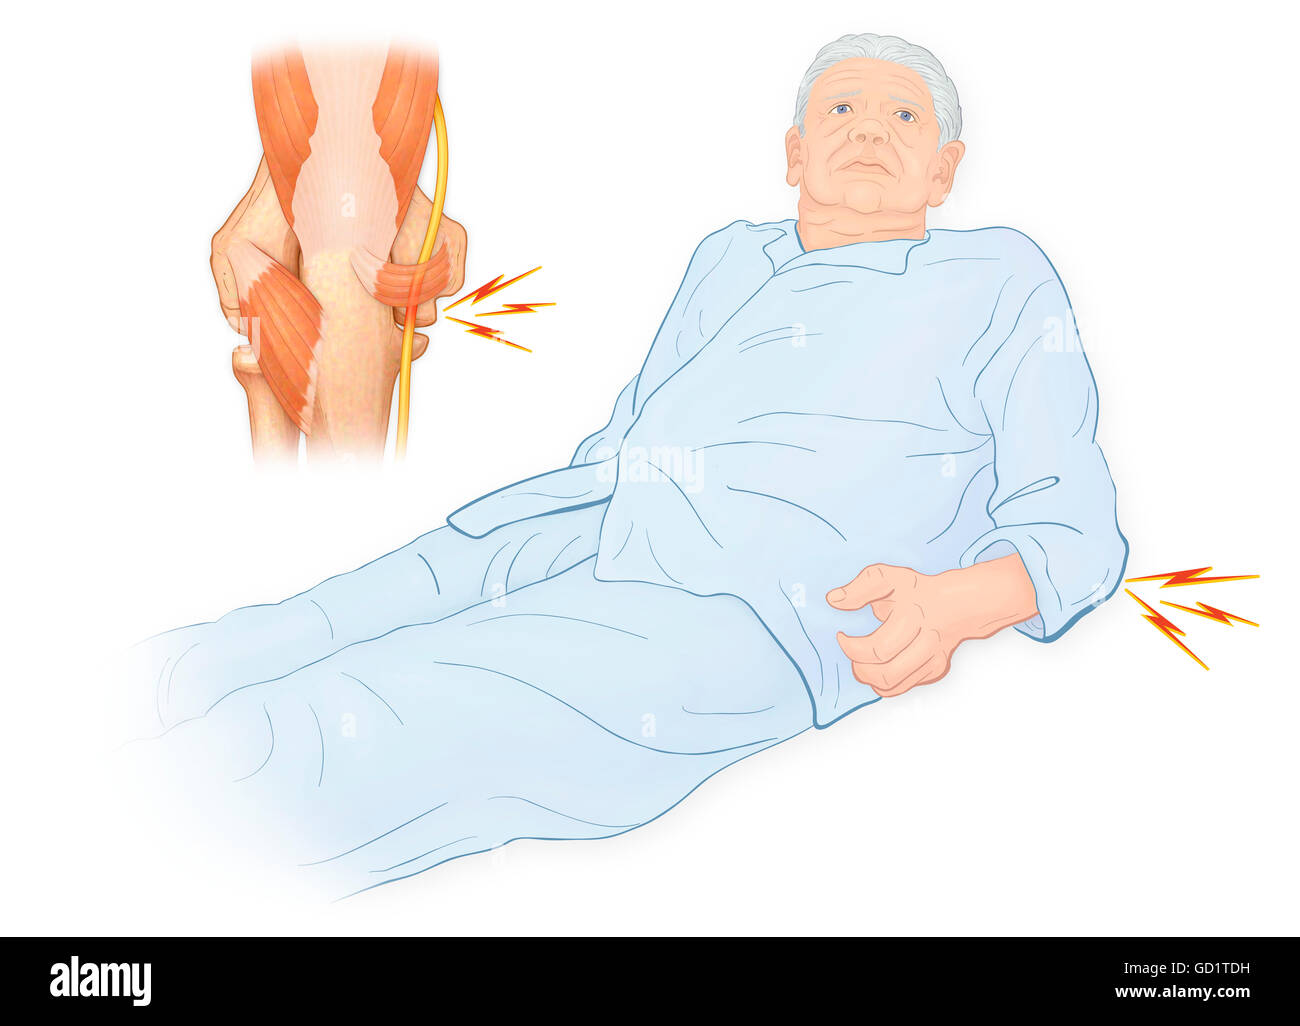 Anconeus Muscle Stock Photos Anconeus Muscle Stock Images Alamy